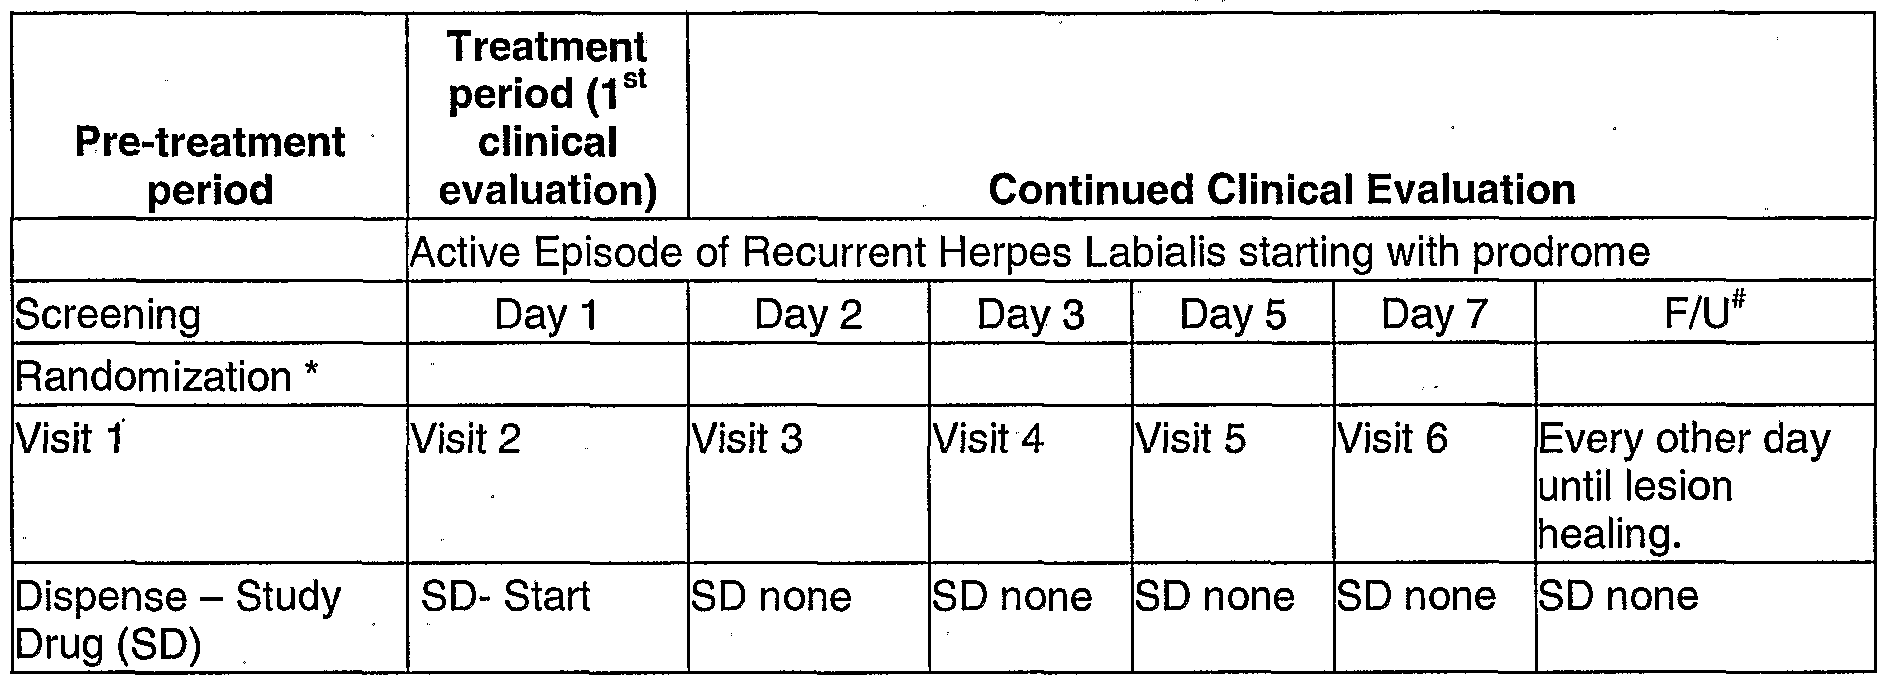 Wo2006105216a1 Famciclovir For The Treatment Of Recurrent Herpes Labialis Using A One Day Treatment Google Patents